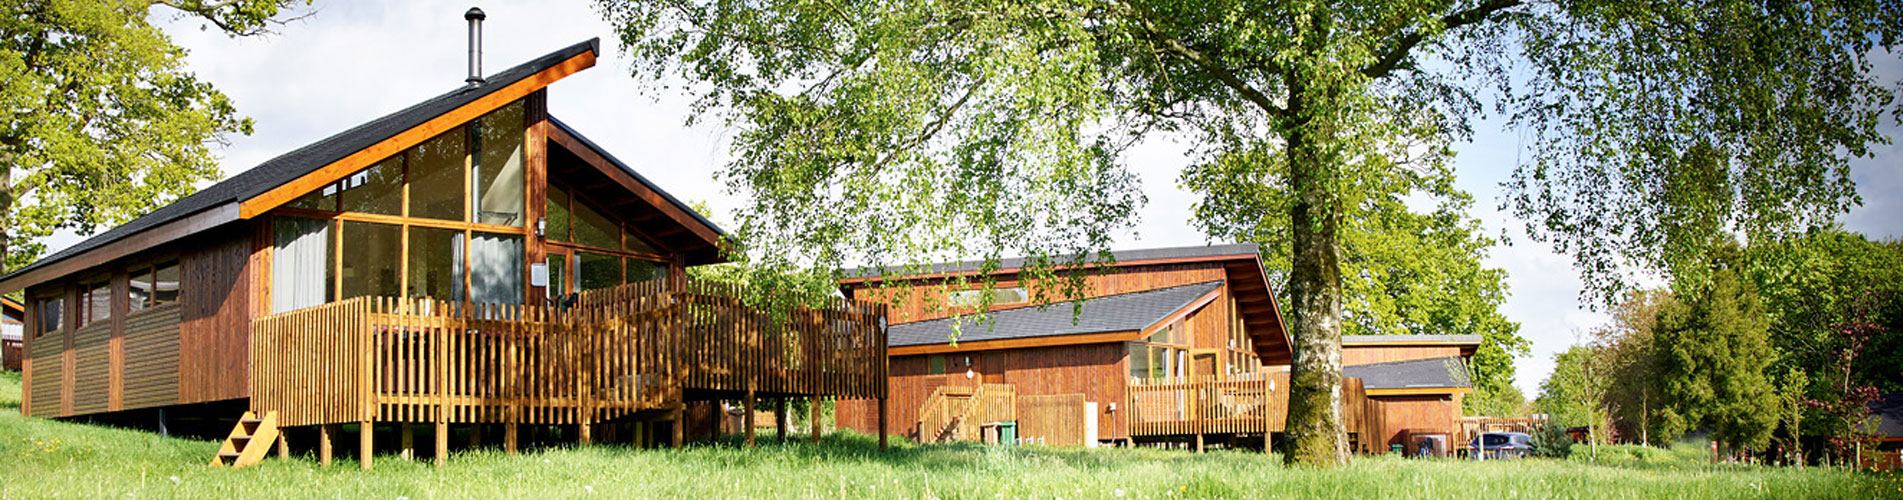 Modular Homes, Lodges, Treehouses & Glamping Pods